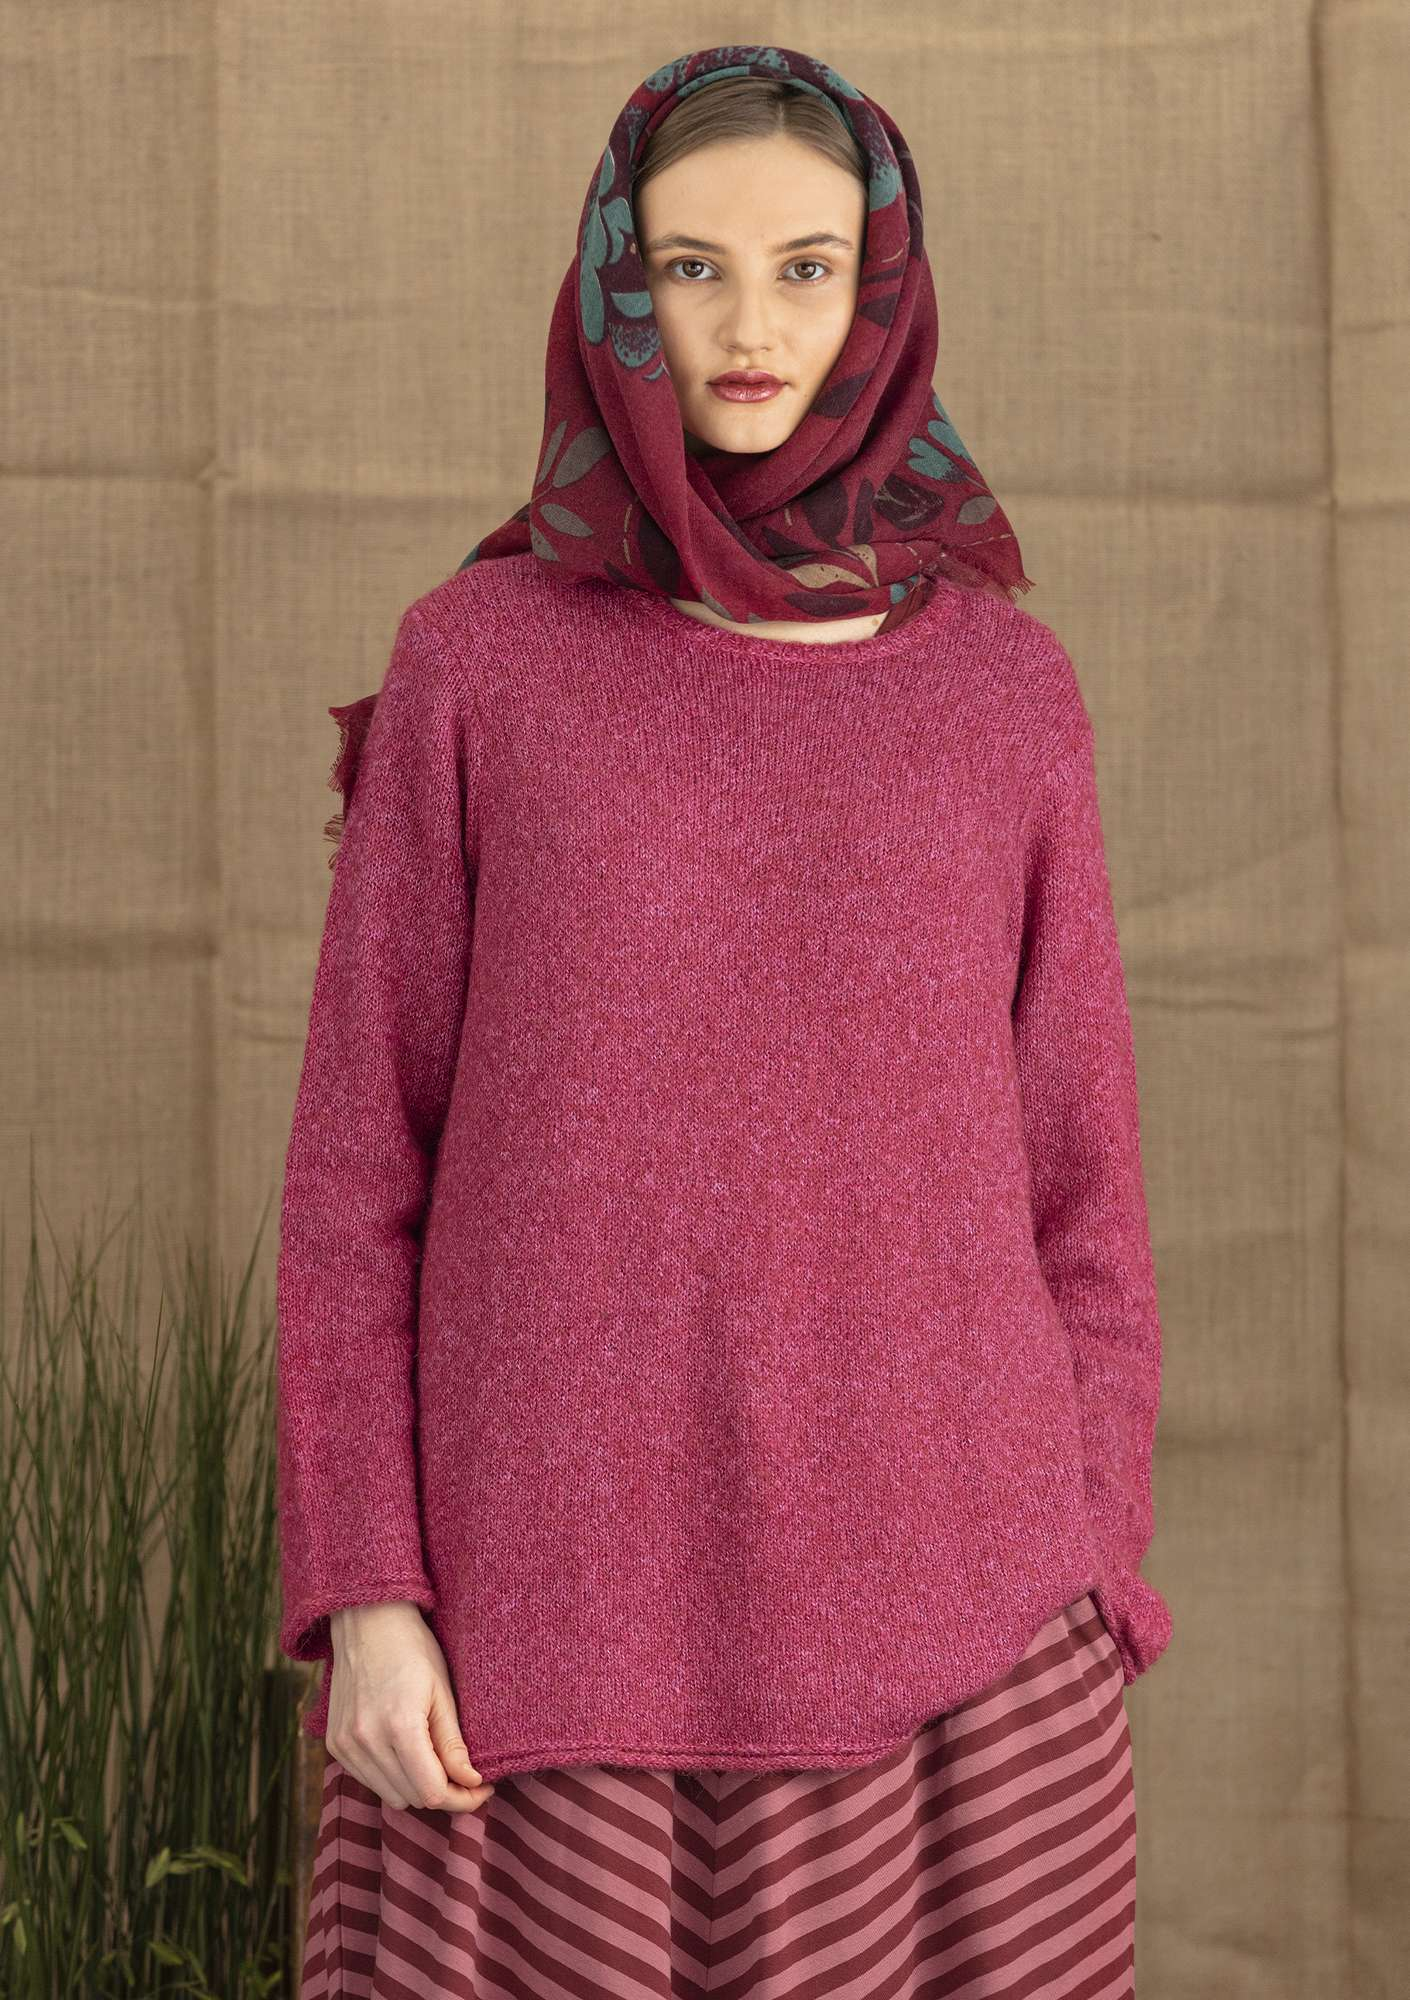 Sweater in an alpaca/cotton blend cranberry/marl